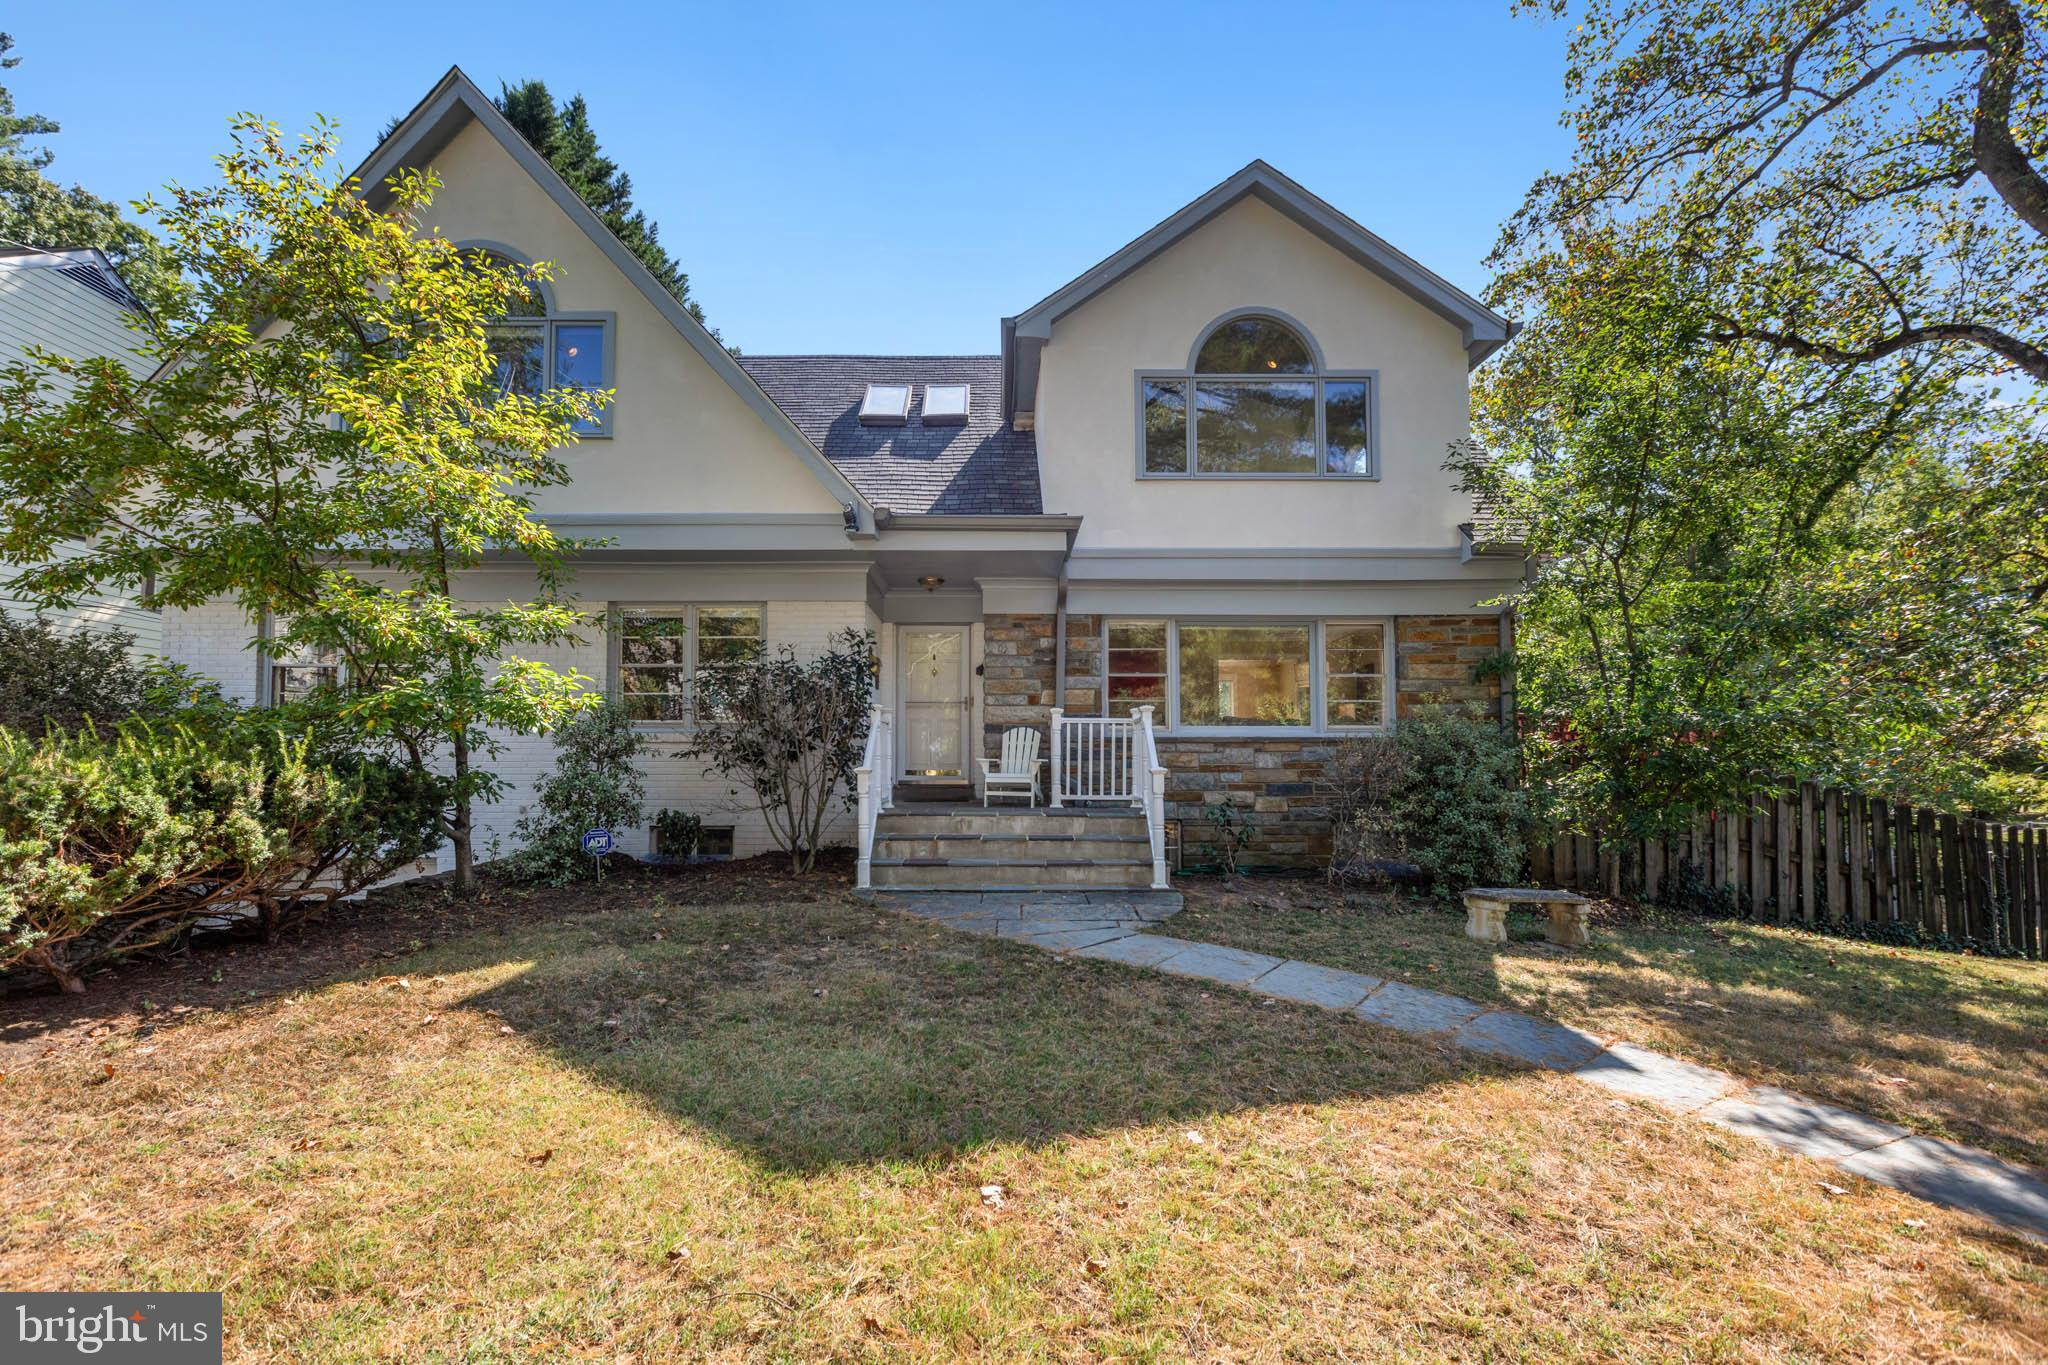 4850 LANGDRUM LANE, CHEVY CHASE, MD 20815